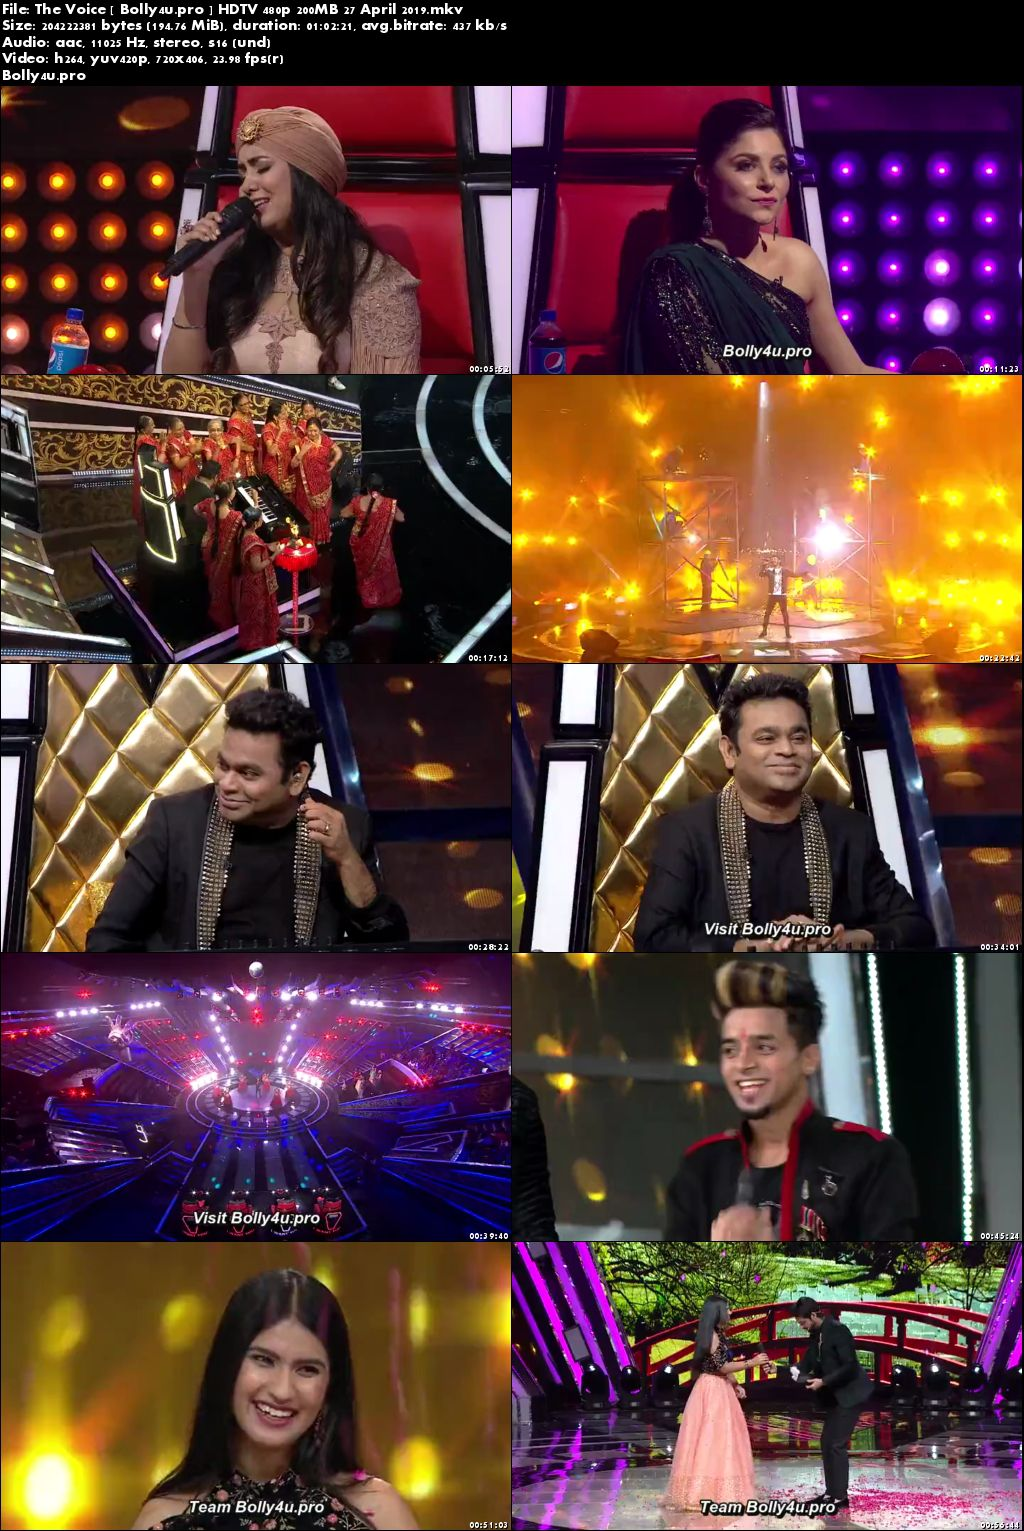 The Voice HDTV 480p 200MB 27 April 2019 Download